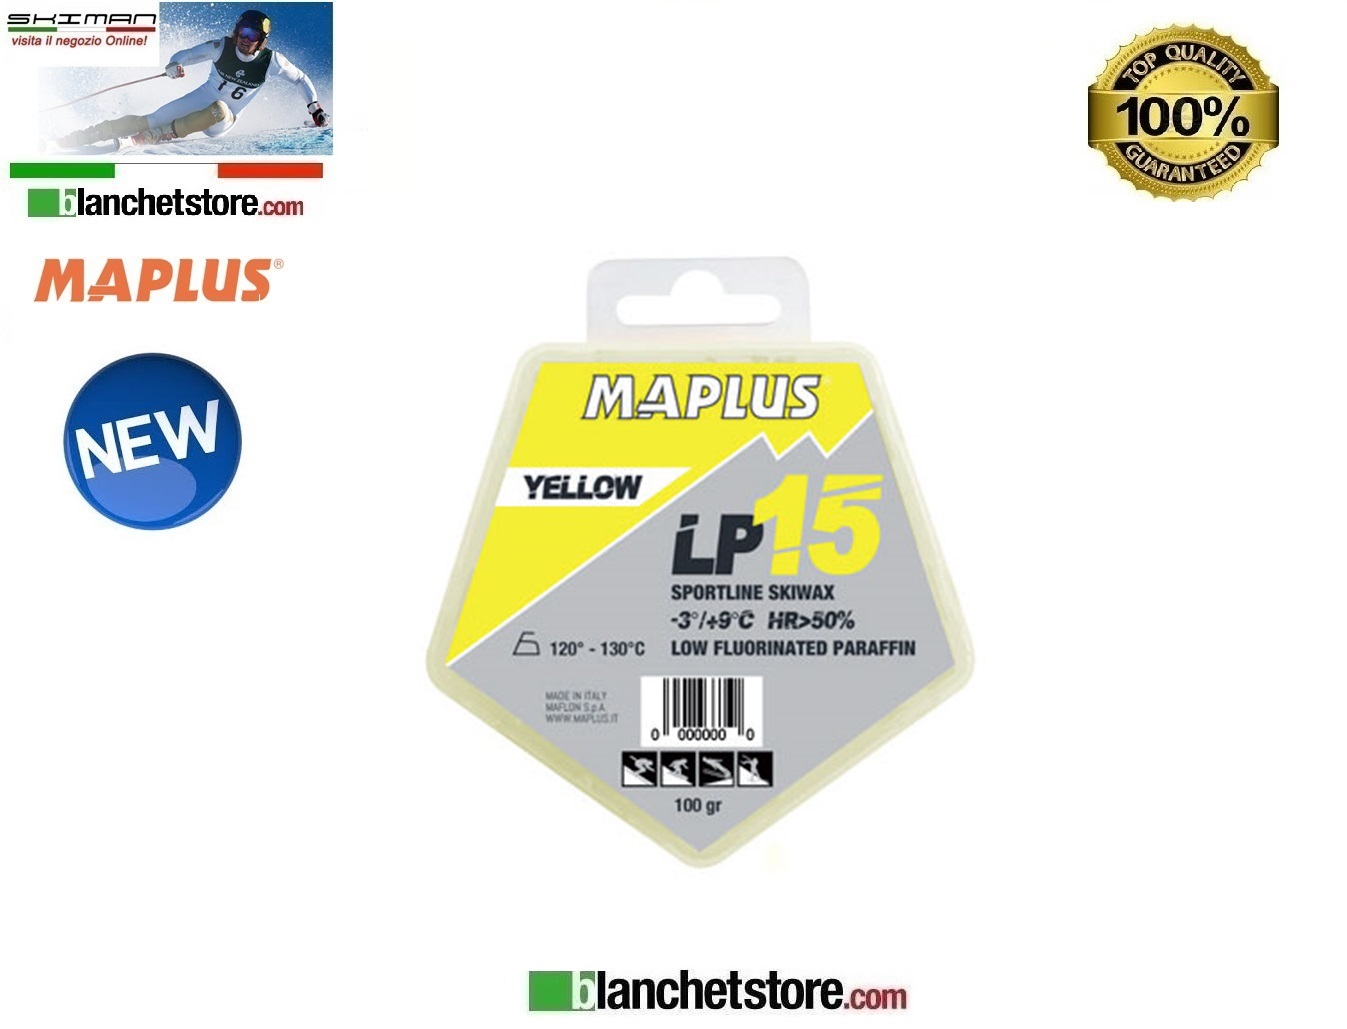 SCIOLINA MAPLUS LOW FLUO LP 15 YELLOW Conf 100 gr